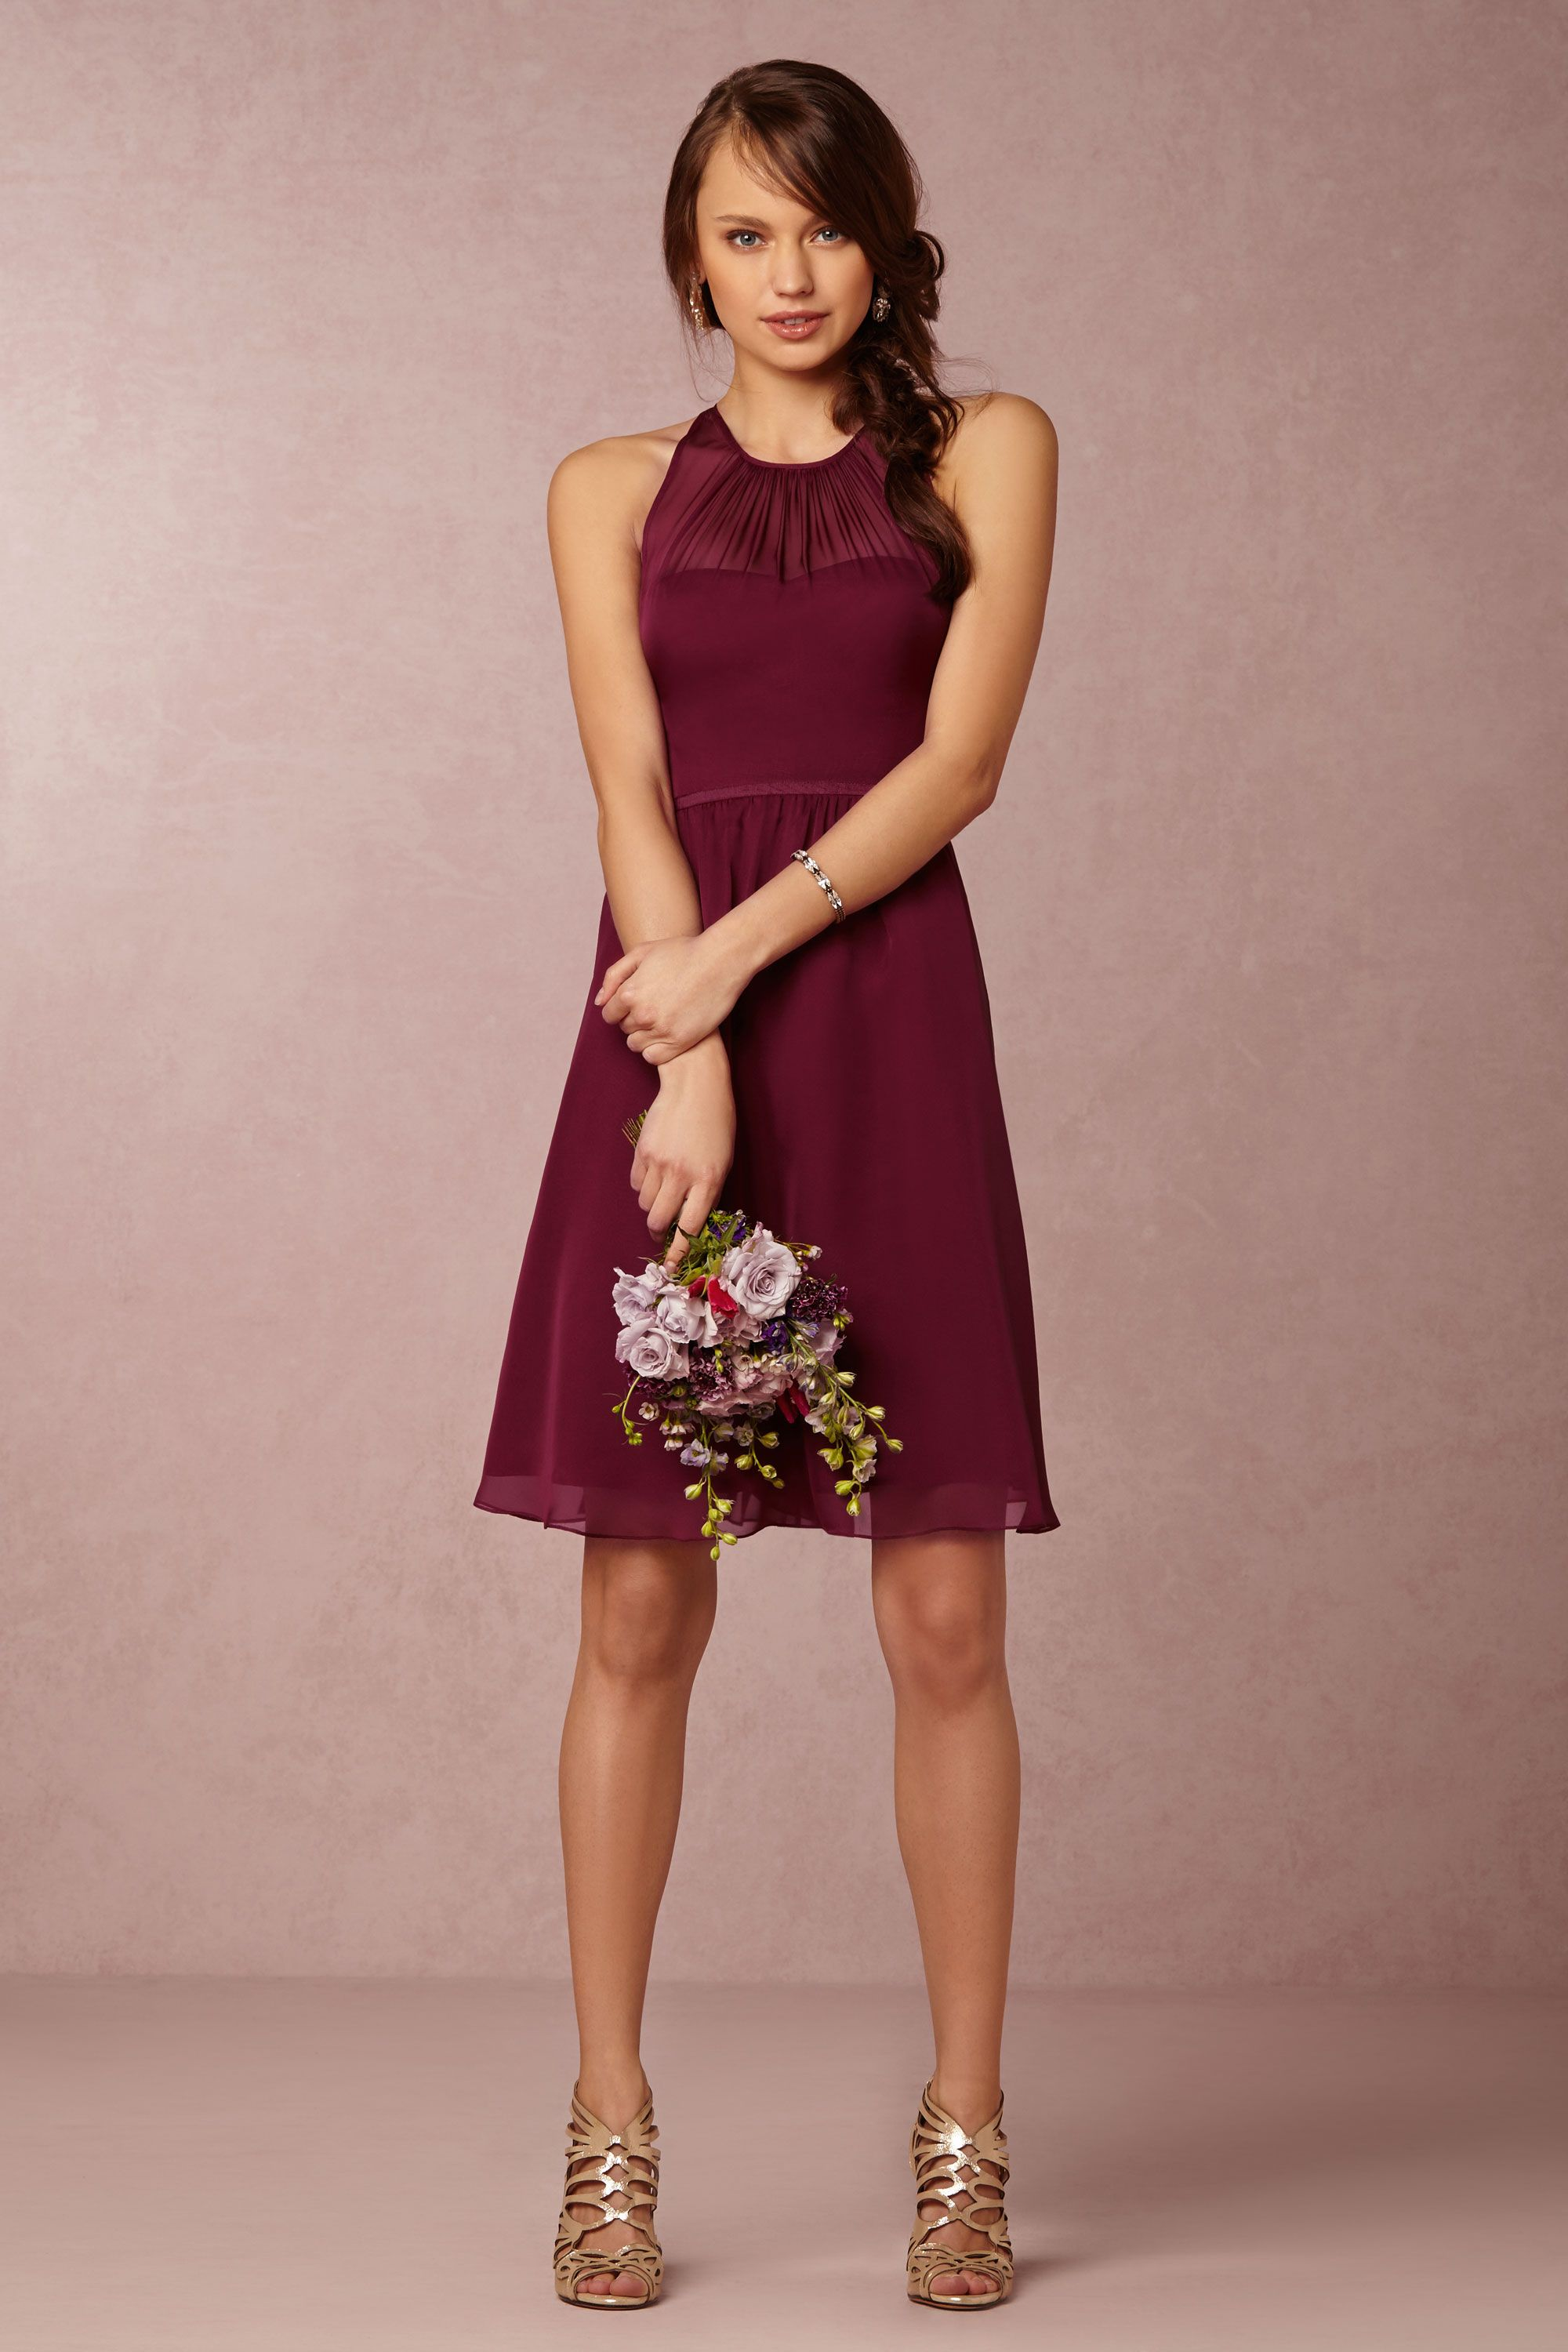 Georgina bridesmaids dress in black cherry from bhldn for What color shoes to wear with black dress to wedding